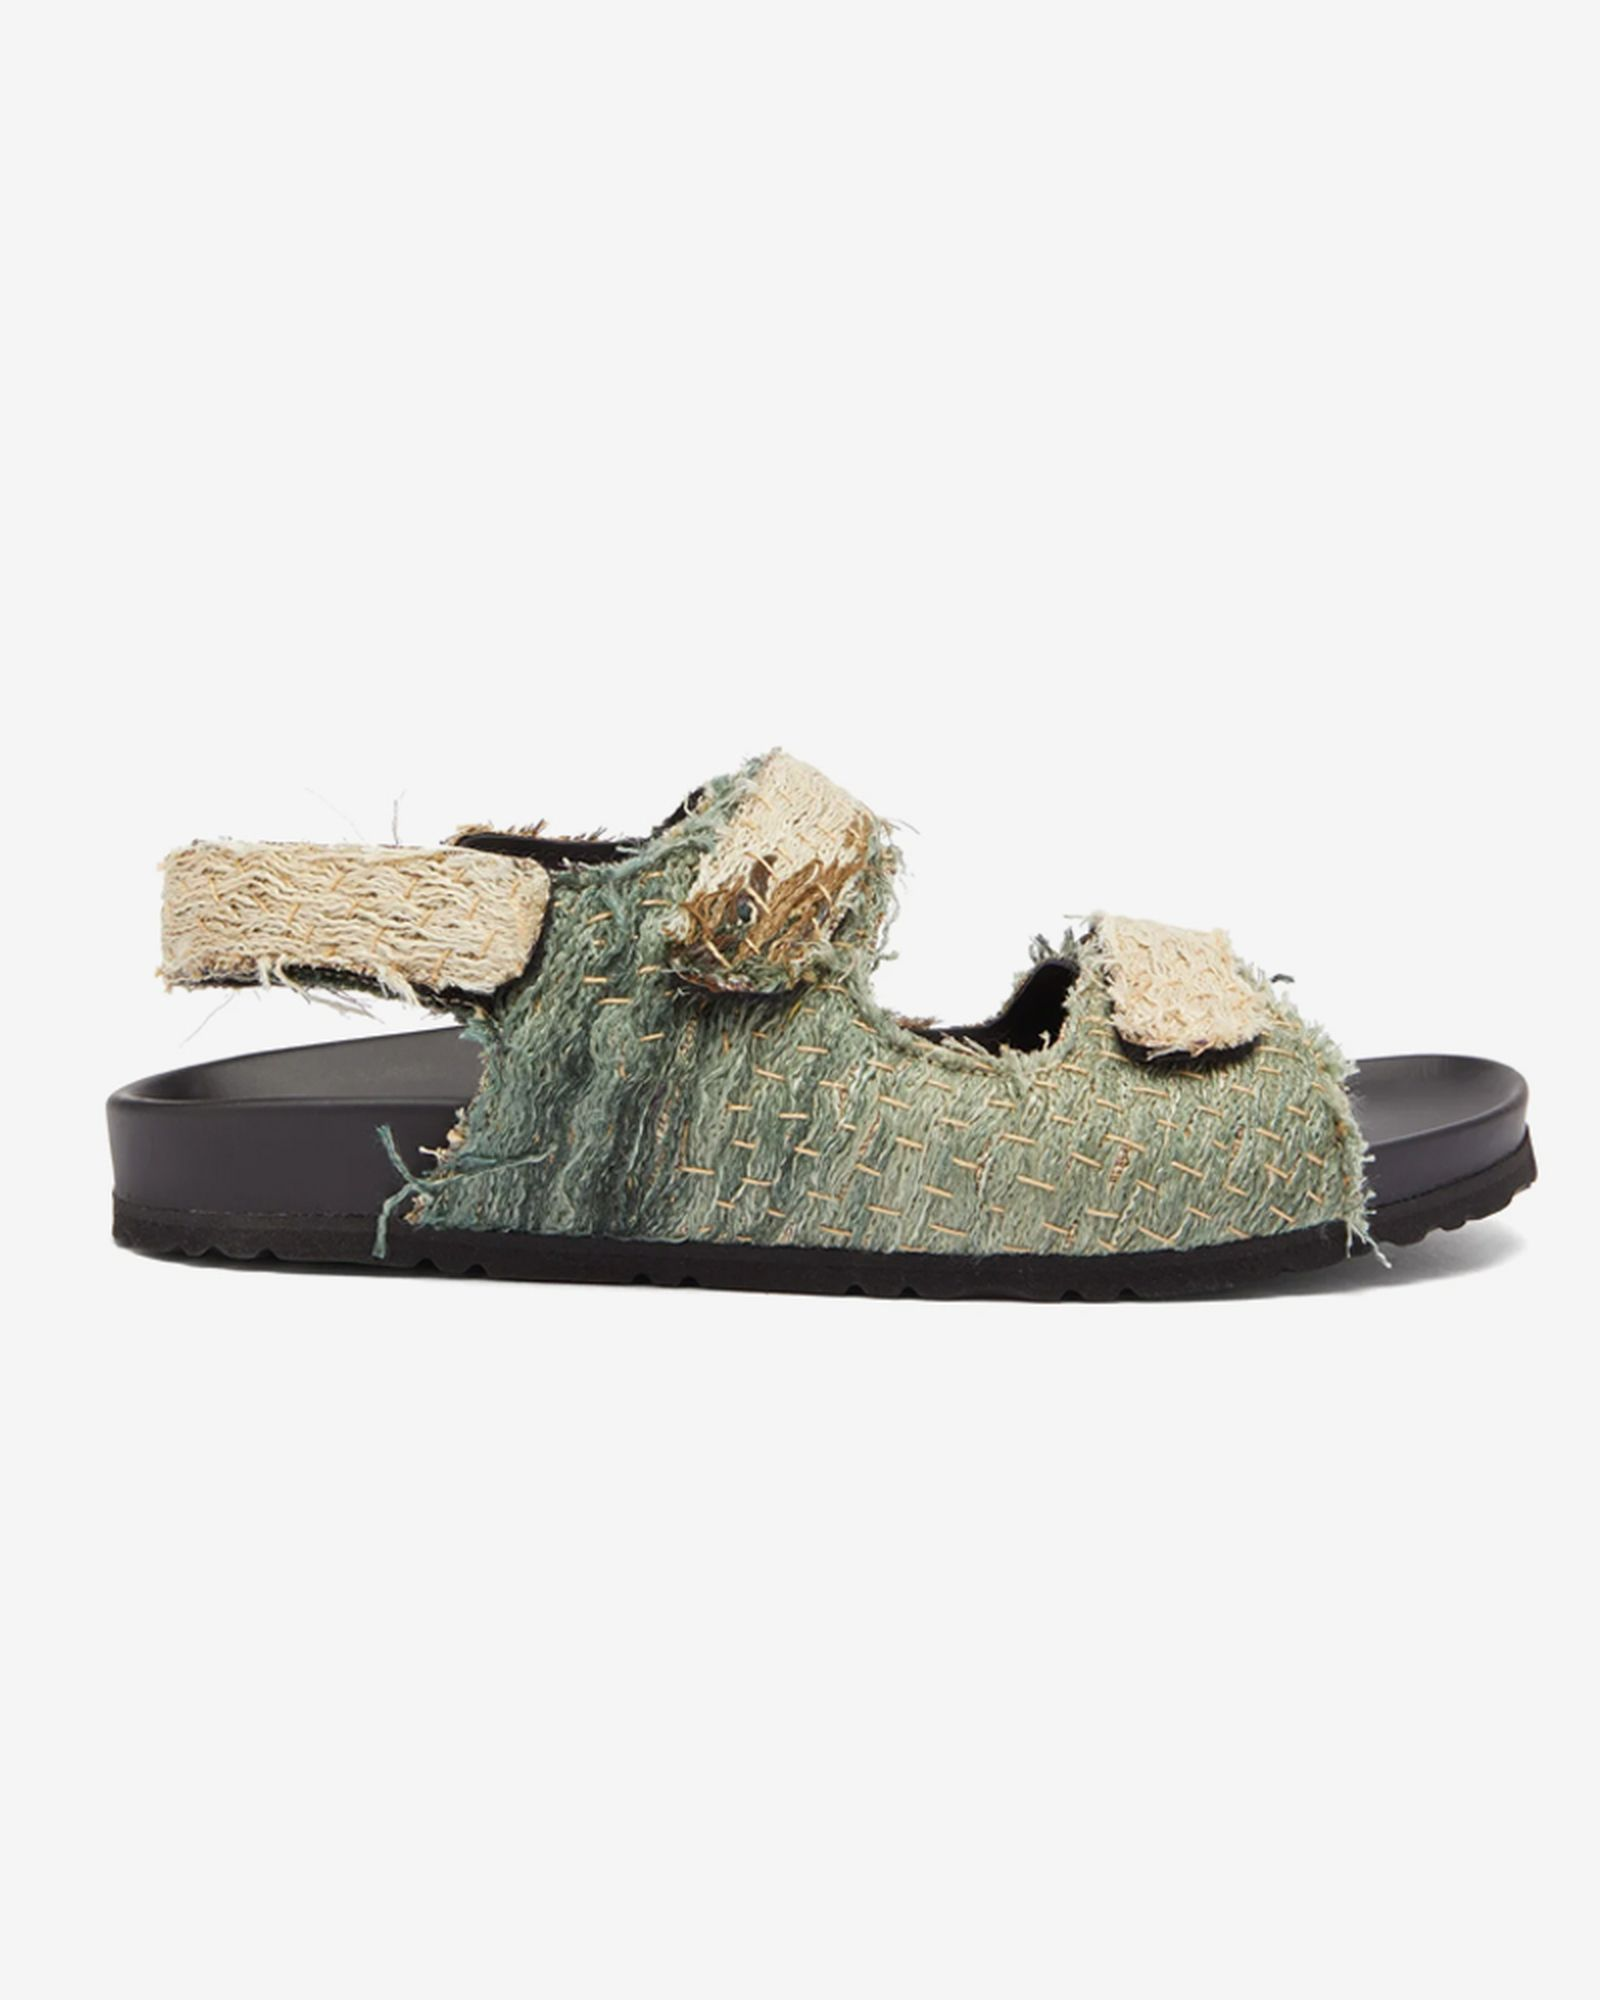 dad-sandals-roundtable-shopping-guide-09